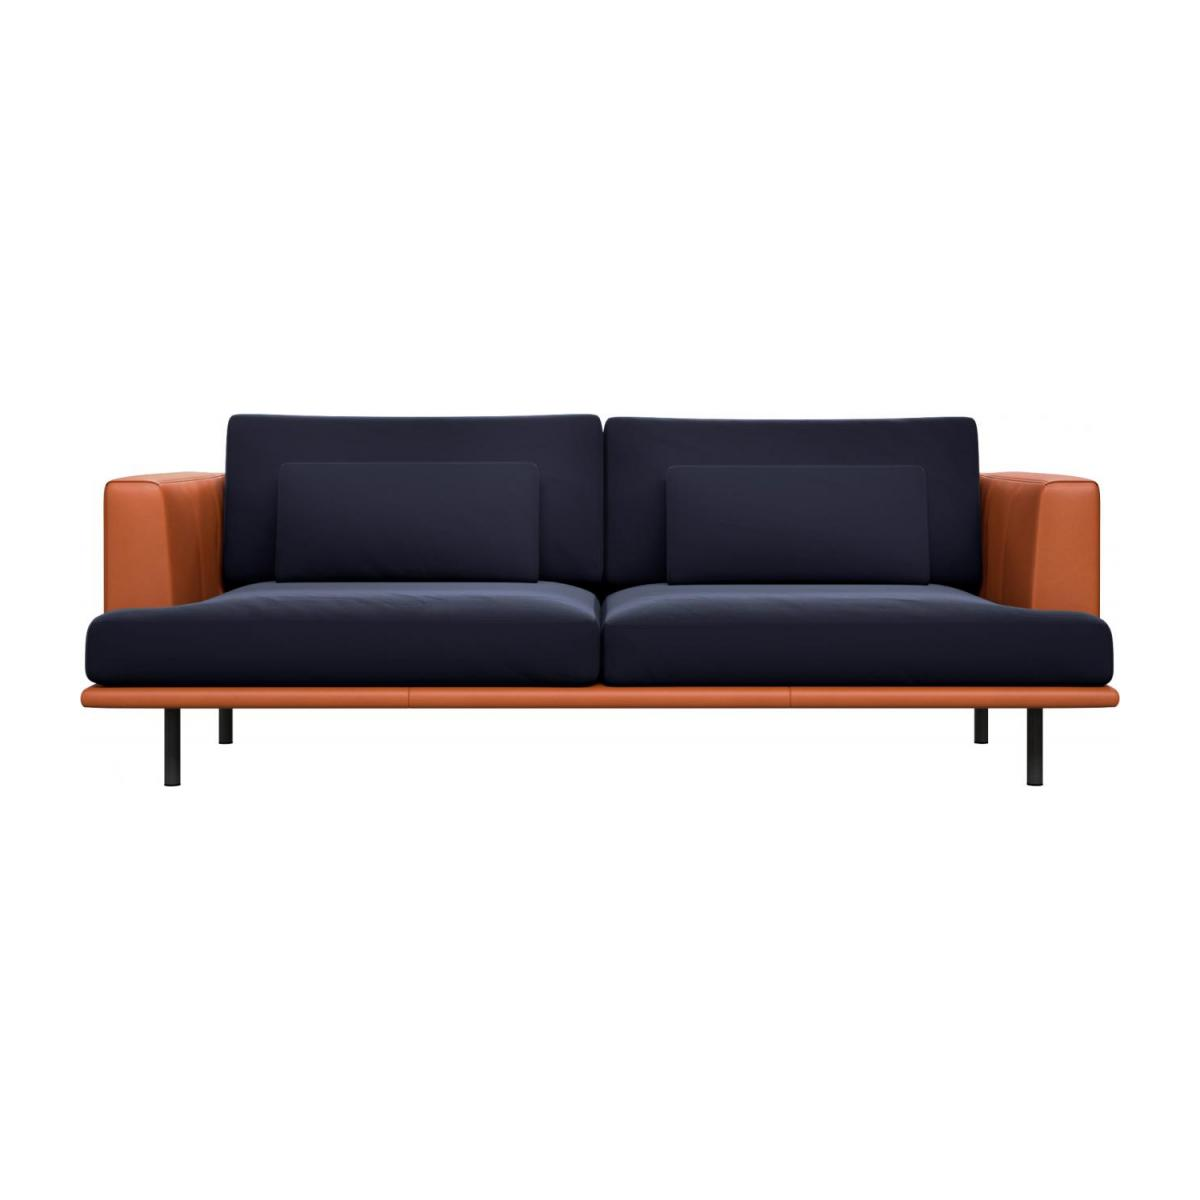 3 seater sofa in Super Velvet fabric, dark blue with base and armrests in brown leather n°3